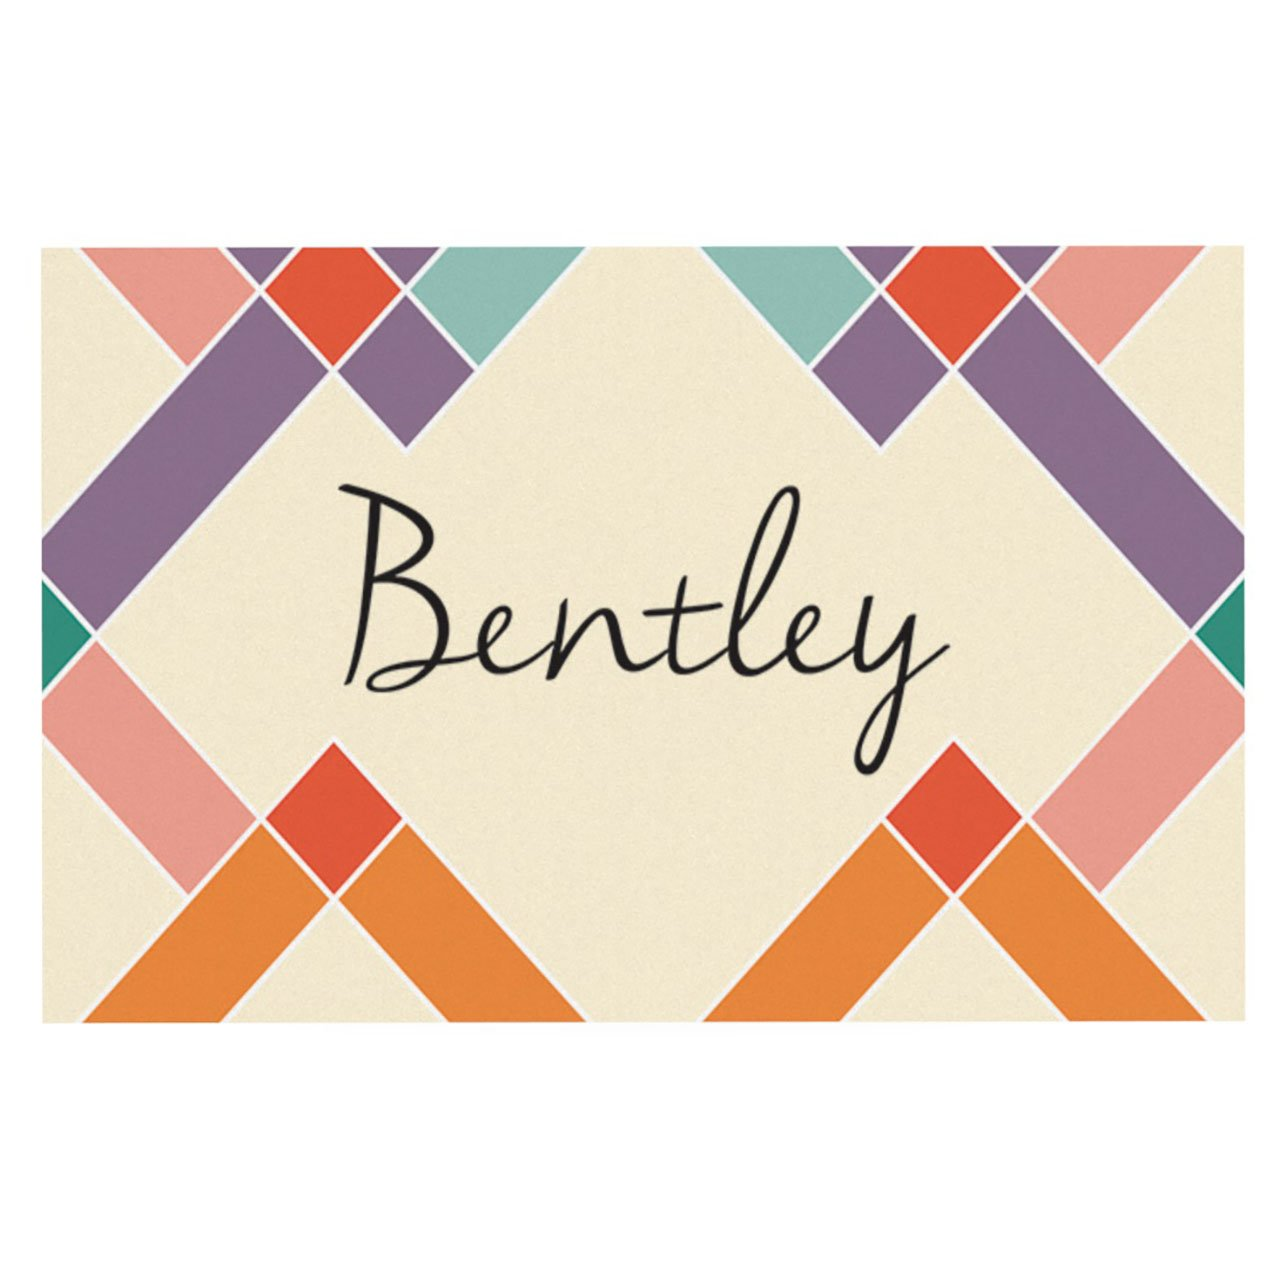 Kess InHouse Original Bentley Colorful Geometry Pet Bowl Feeding Placemat for Dogs and Cats, 18 by 13-Inch